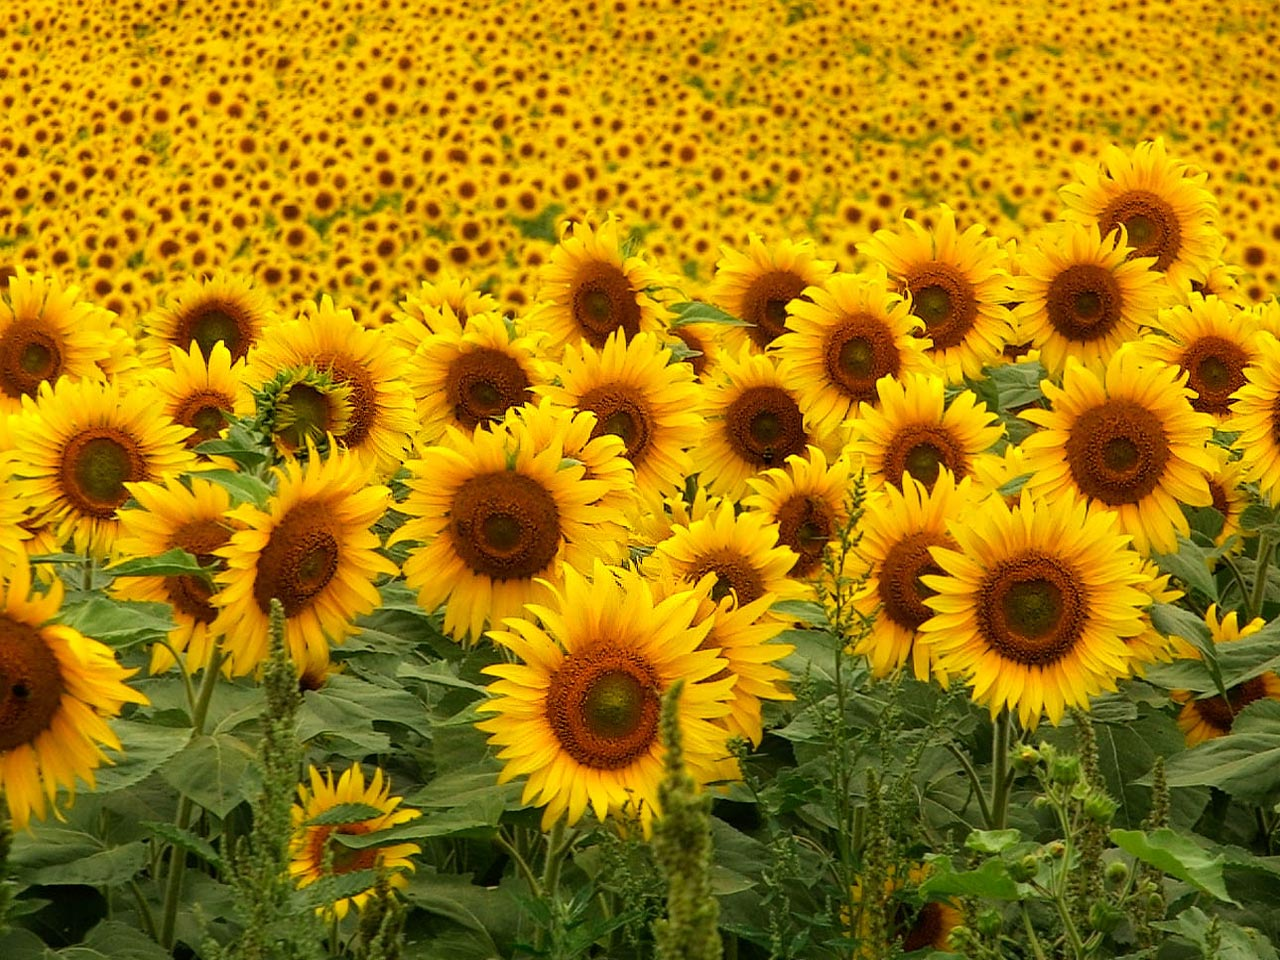 sunflowers2-13ob4e5.jpg